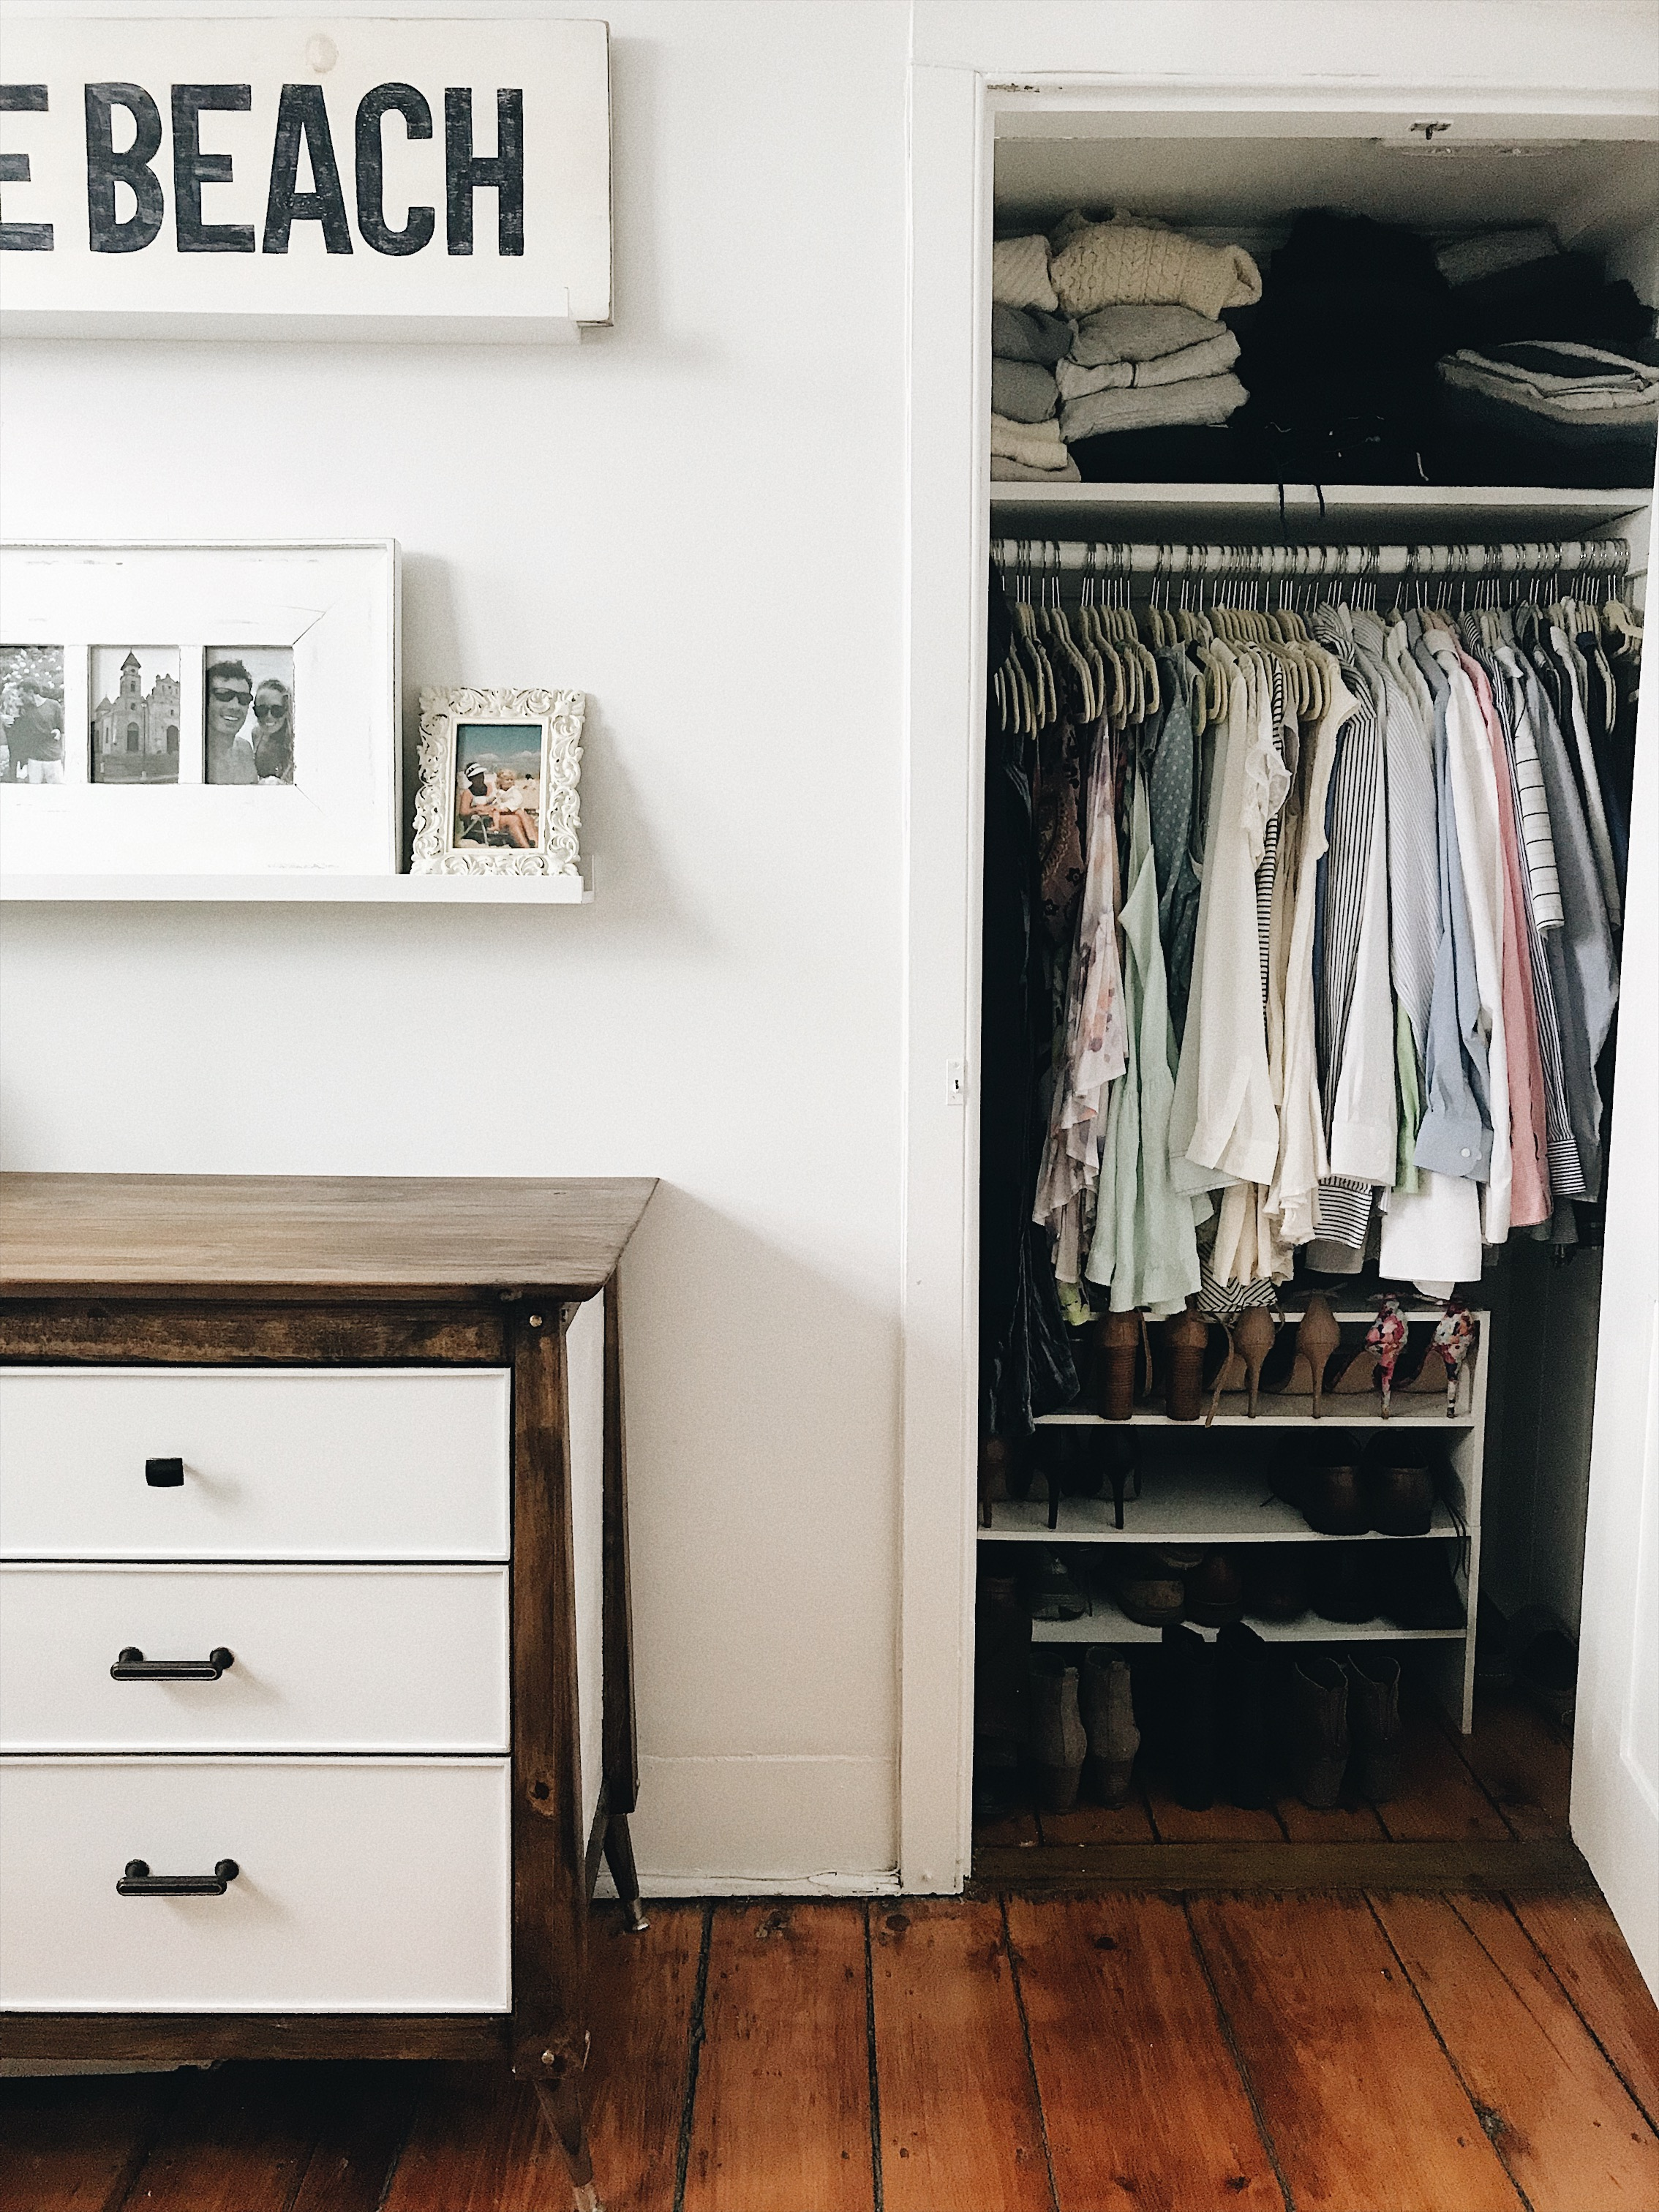 Creating a minimalist capsule wardrobe filled with clothes I love